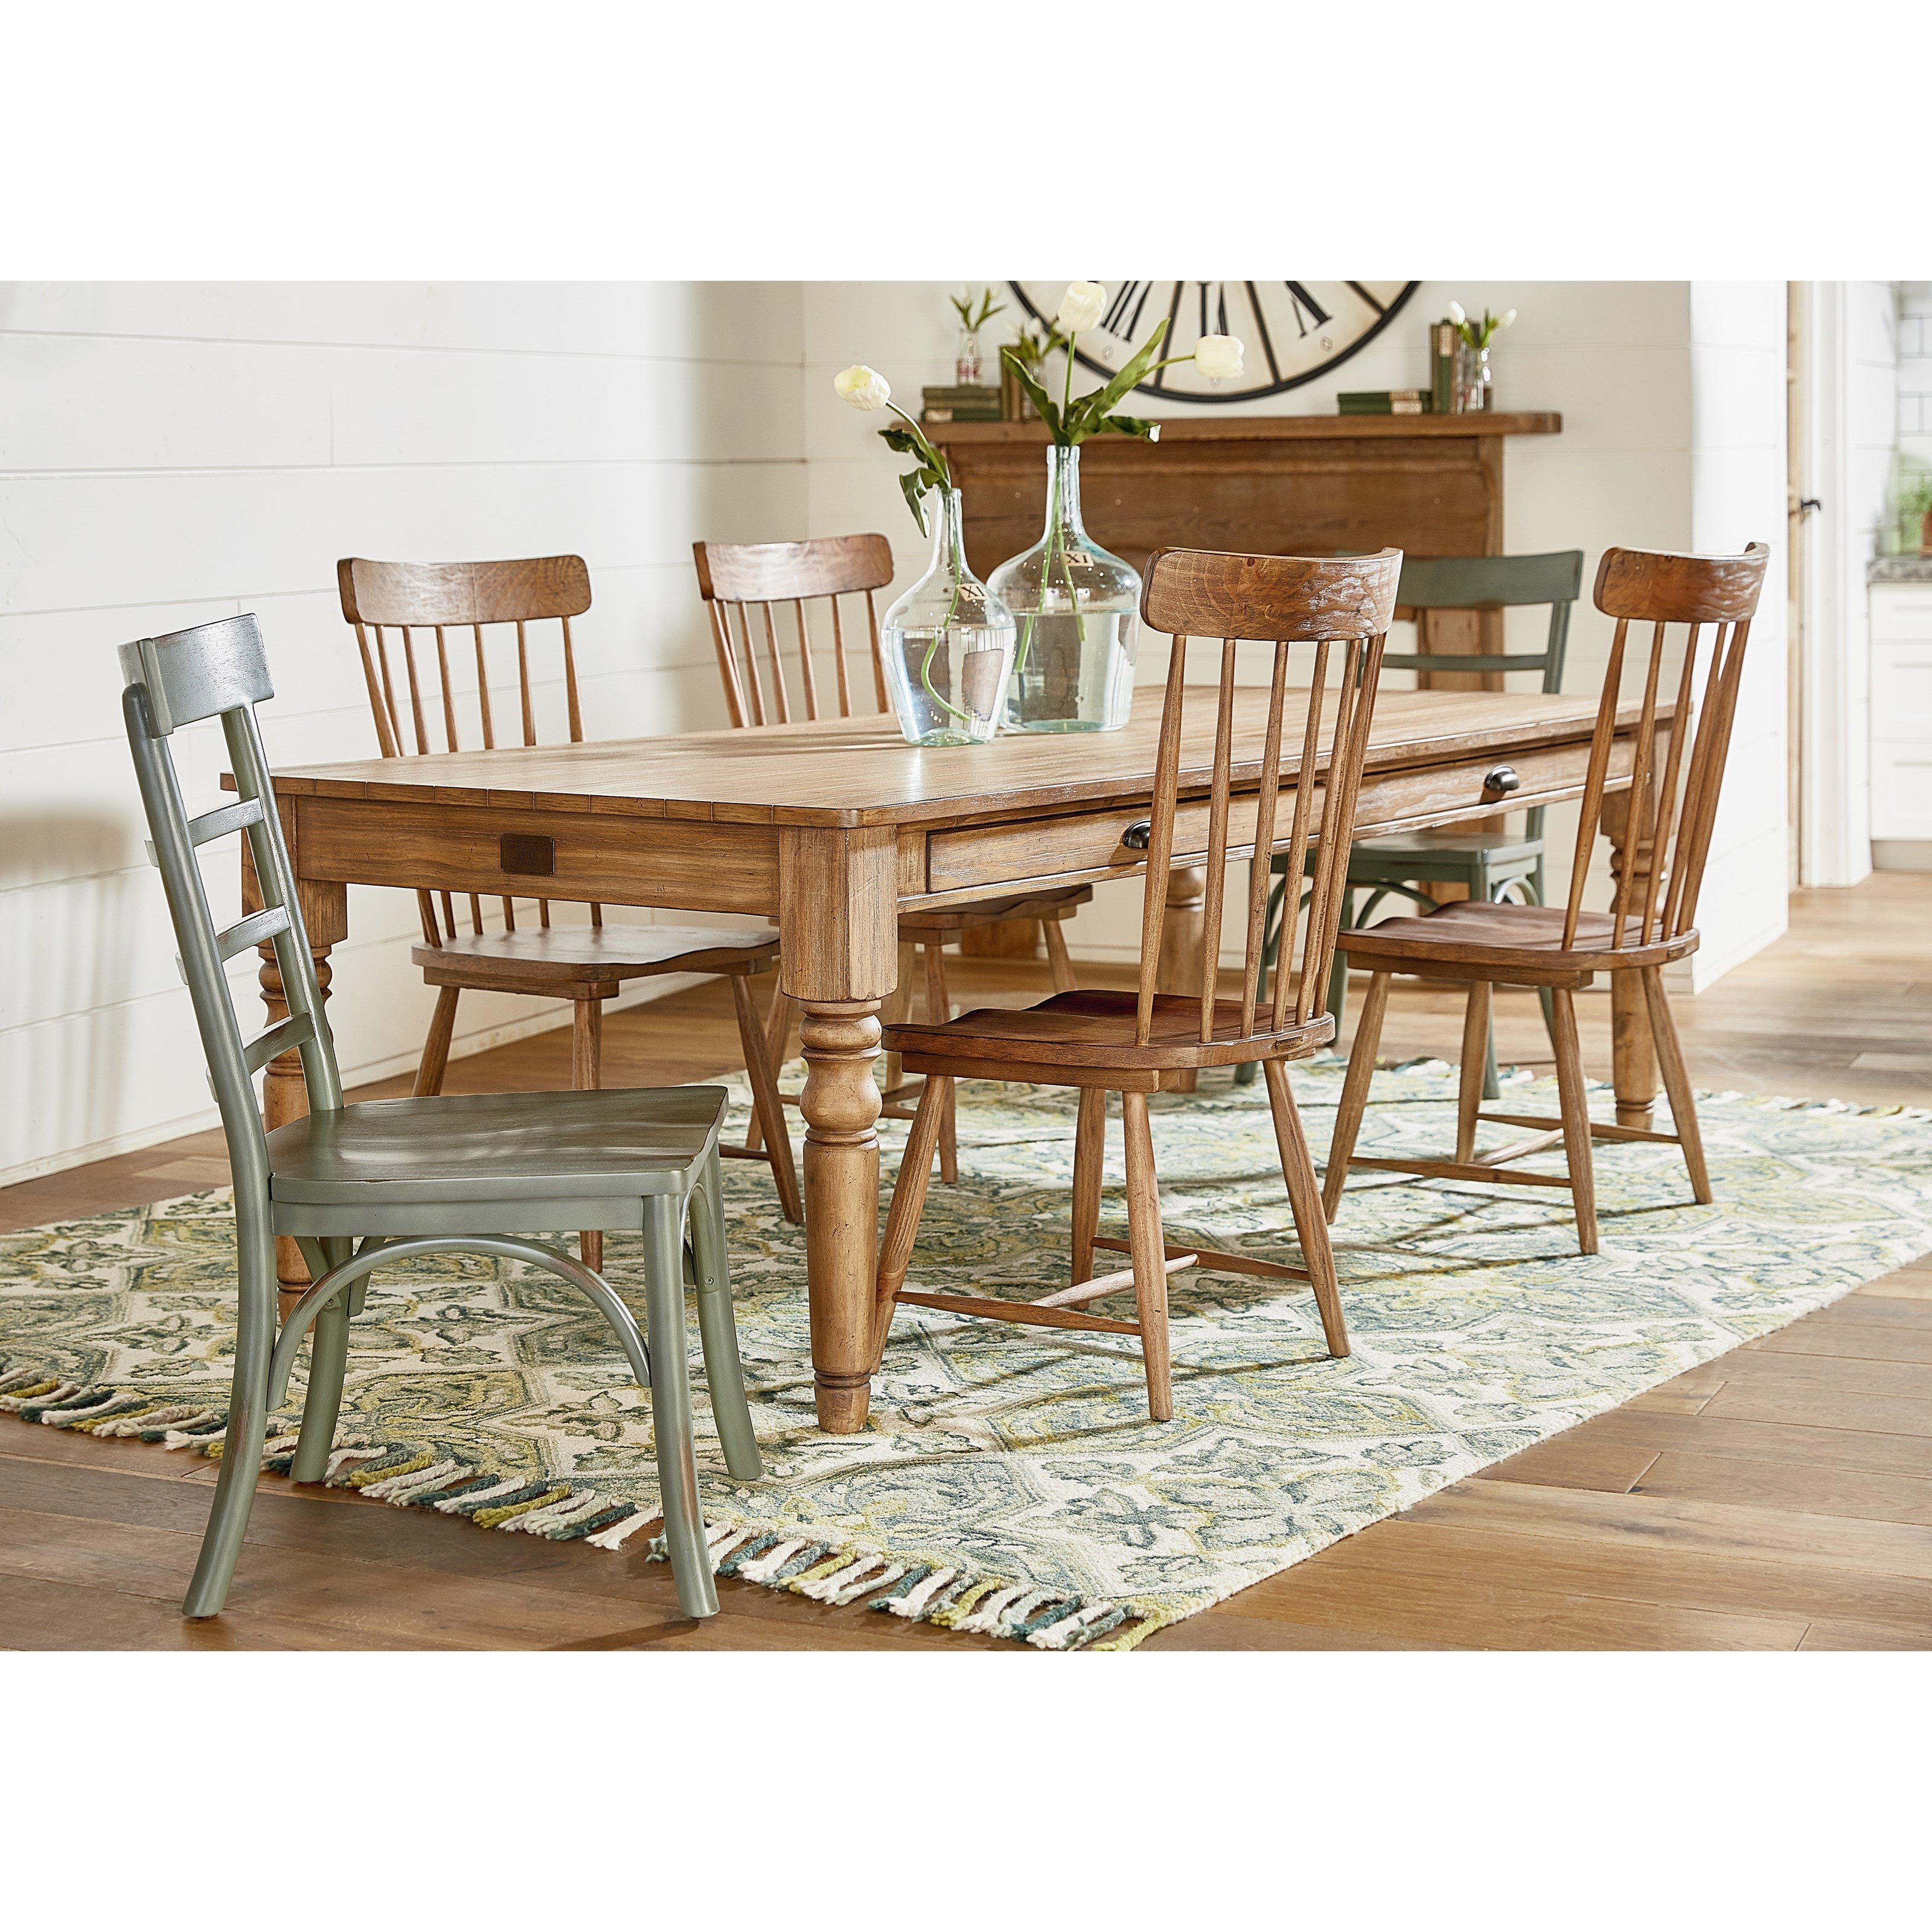 Magnolia Home By Joanna Gaines Primitive Table And Chair Set